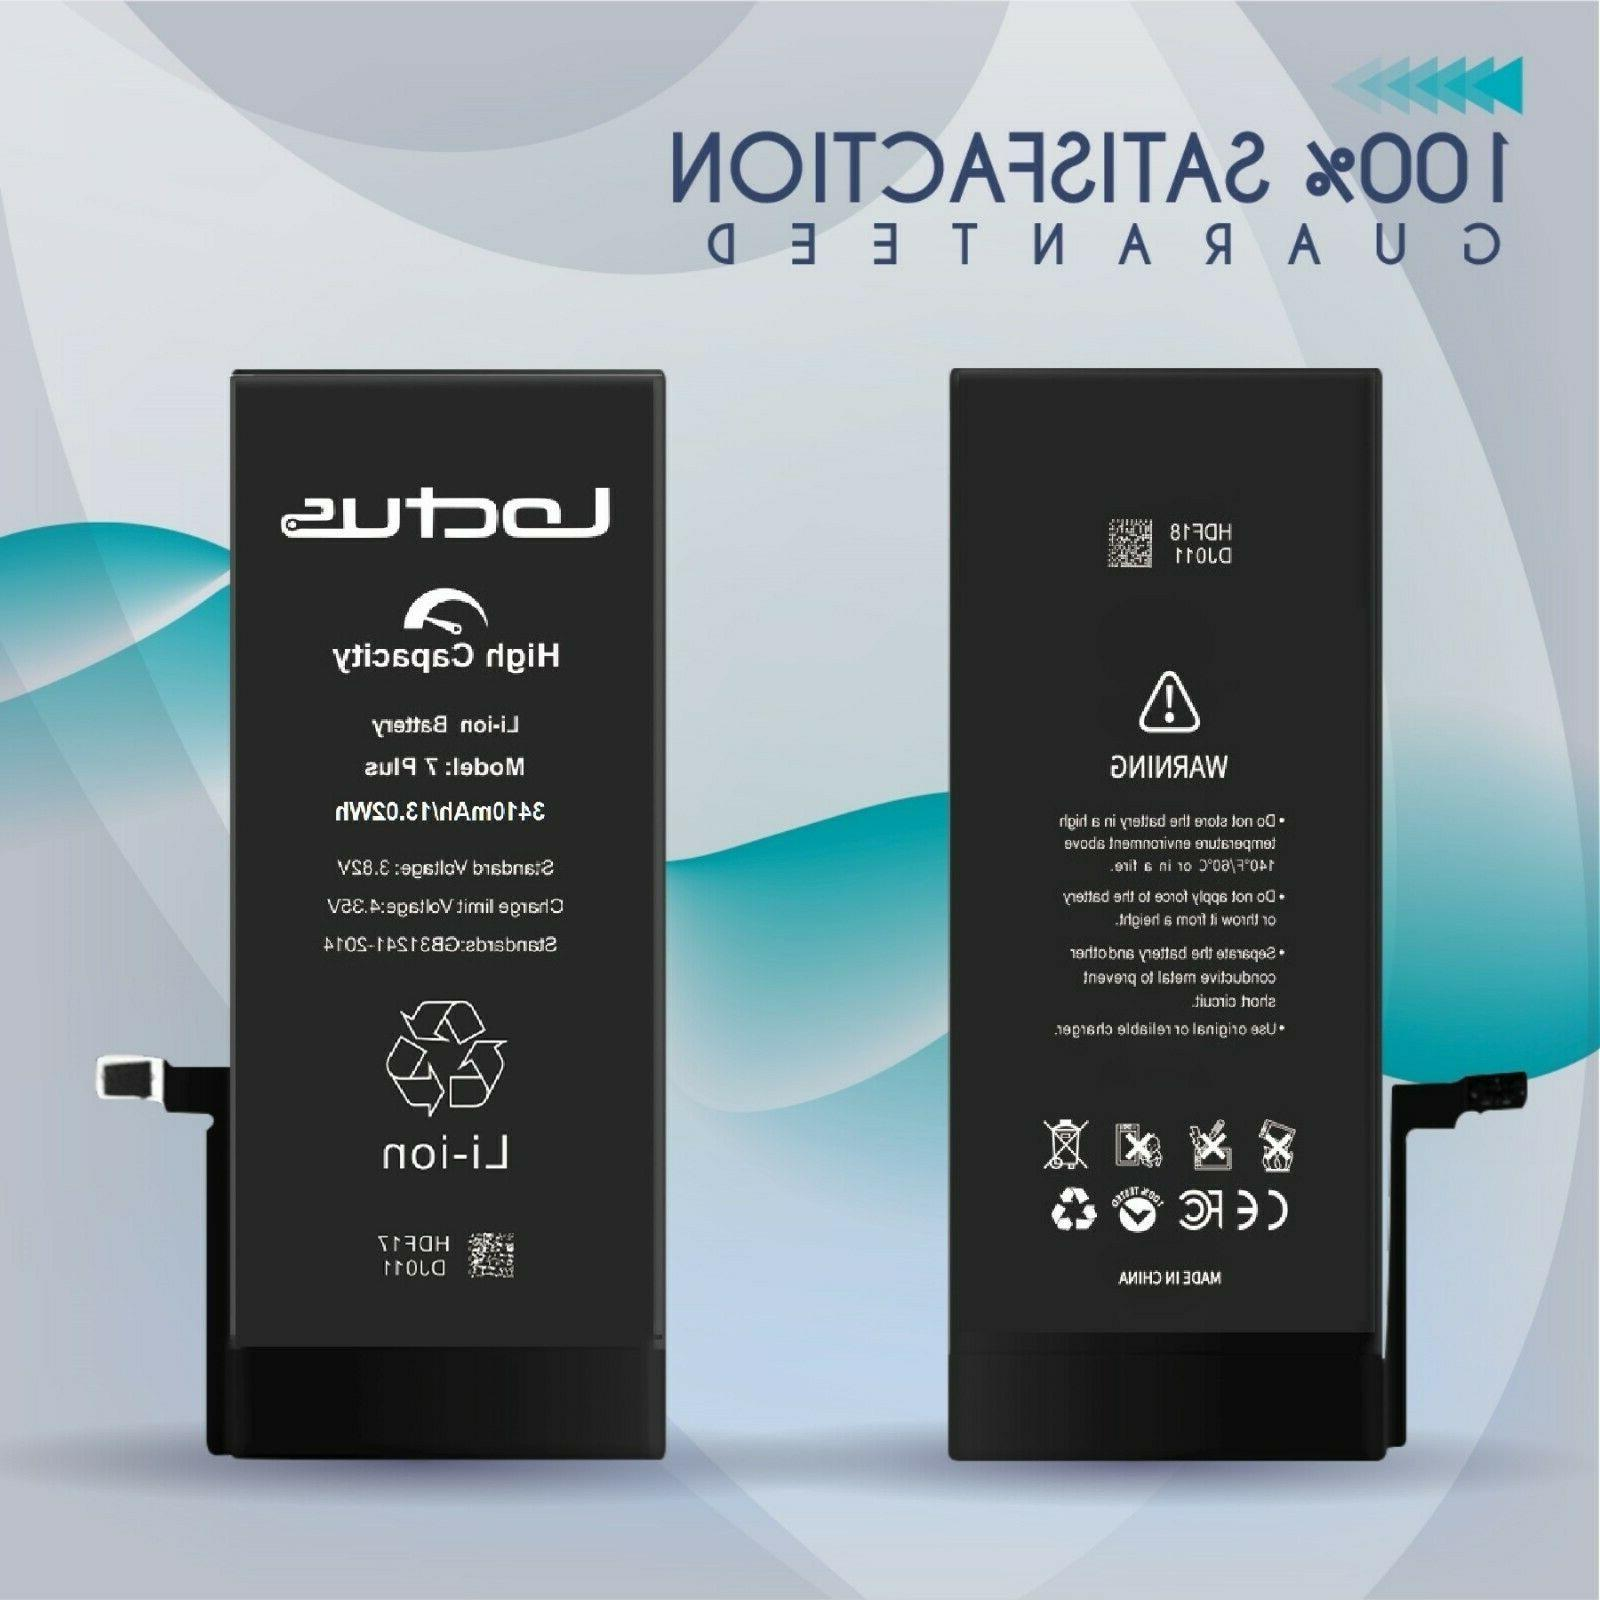 3410mAh for iPhone Complete Warranty